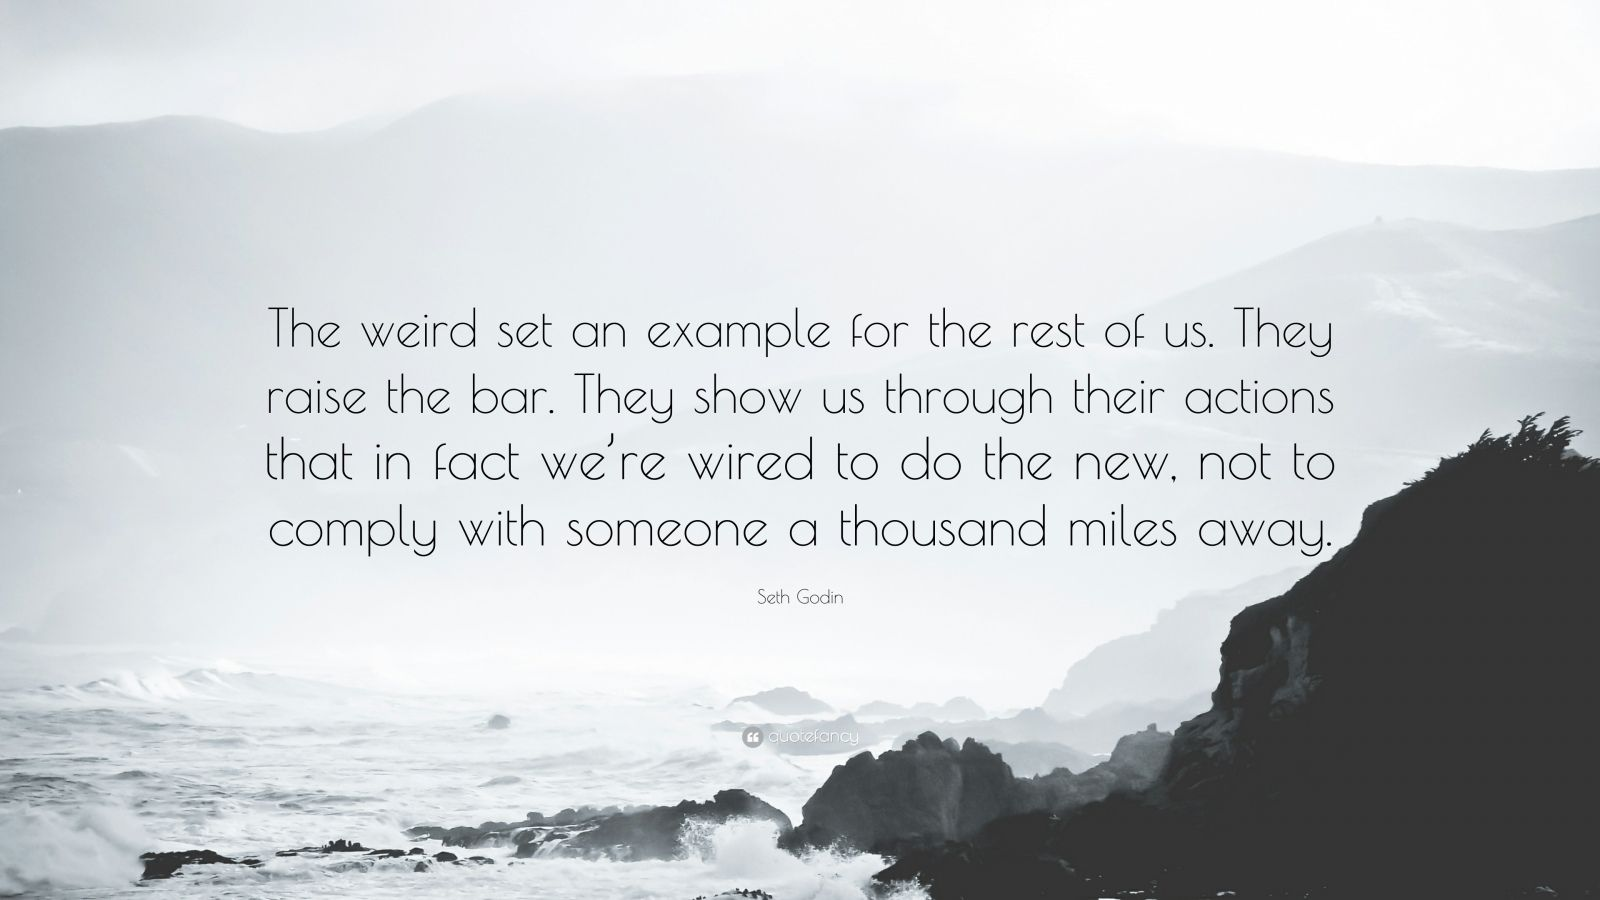 """Seth Godin Quote: """"The weird set an example for the rest of us. They raise the bar. They show us through their actions that in fact we're wired to do the new, not to comply with someone a thousand miles away."""""""